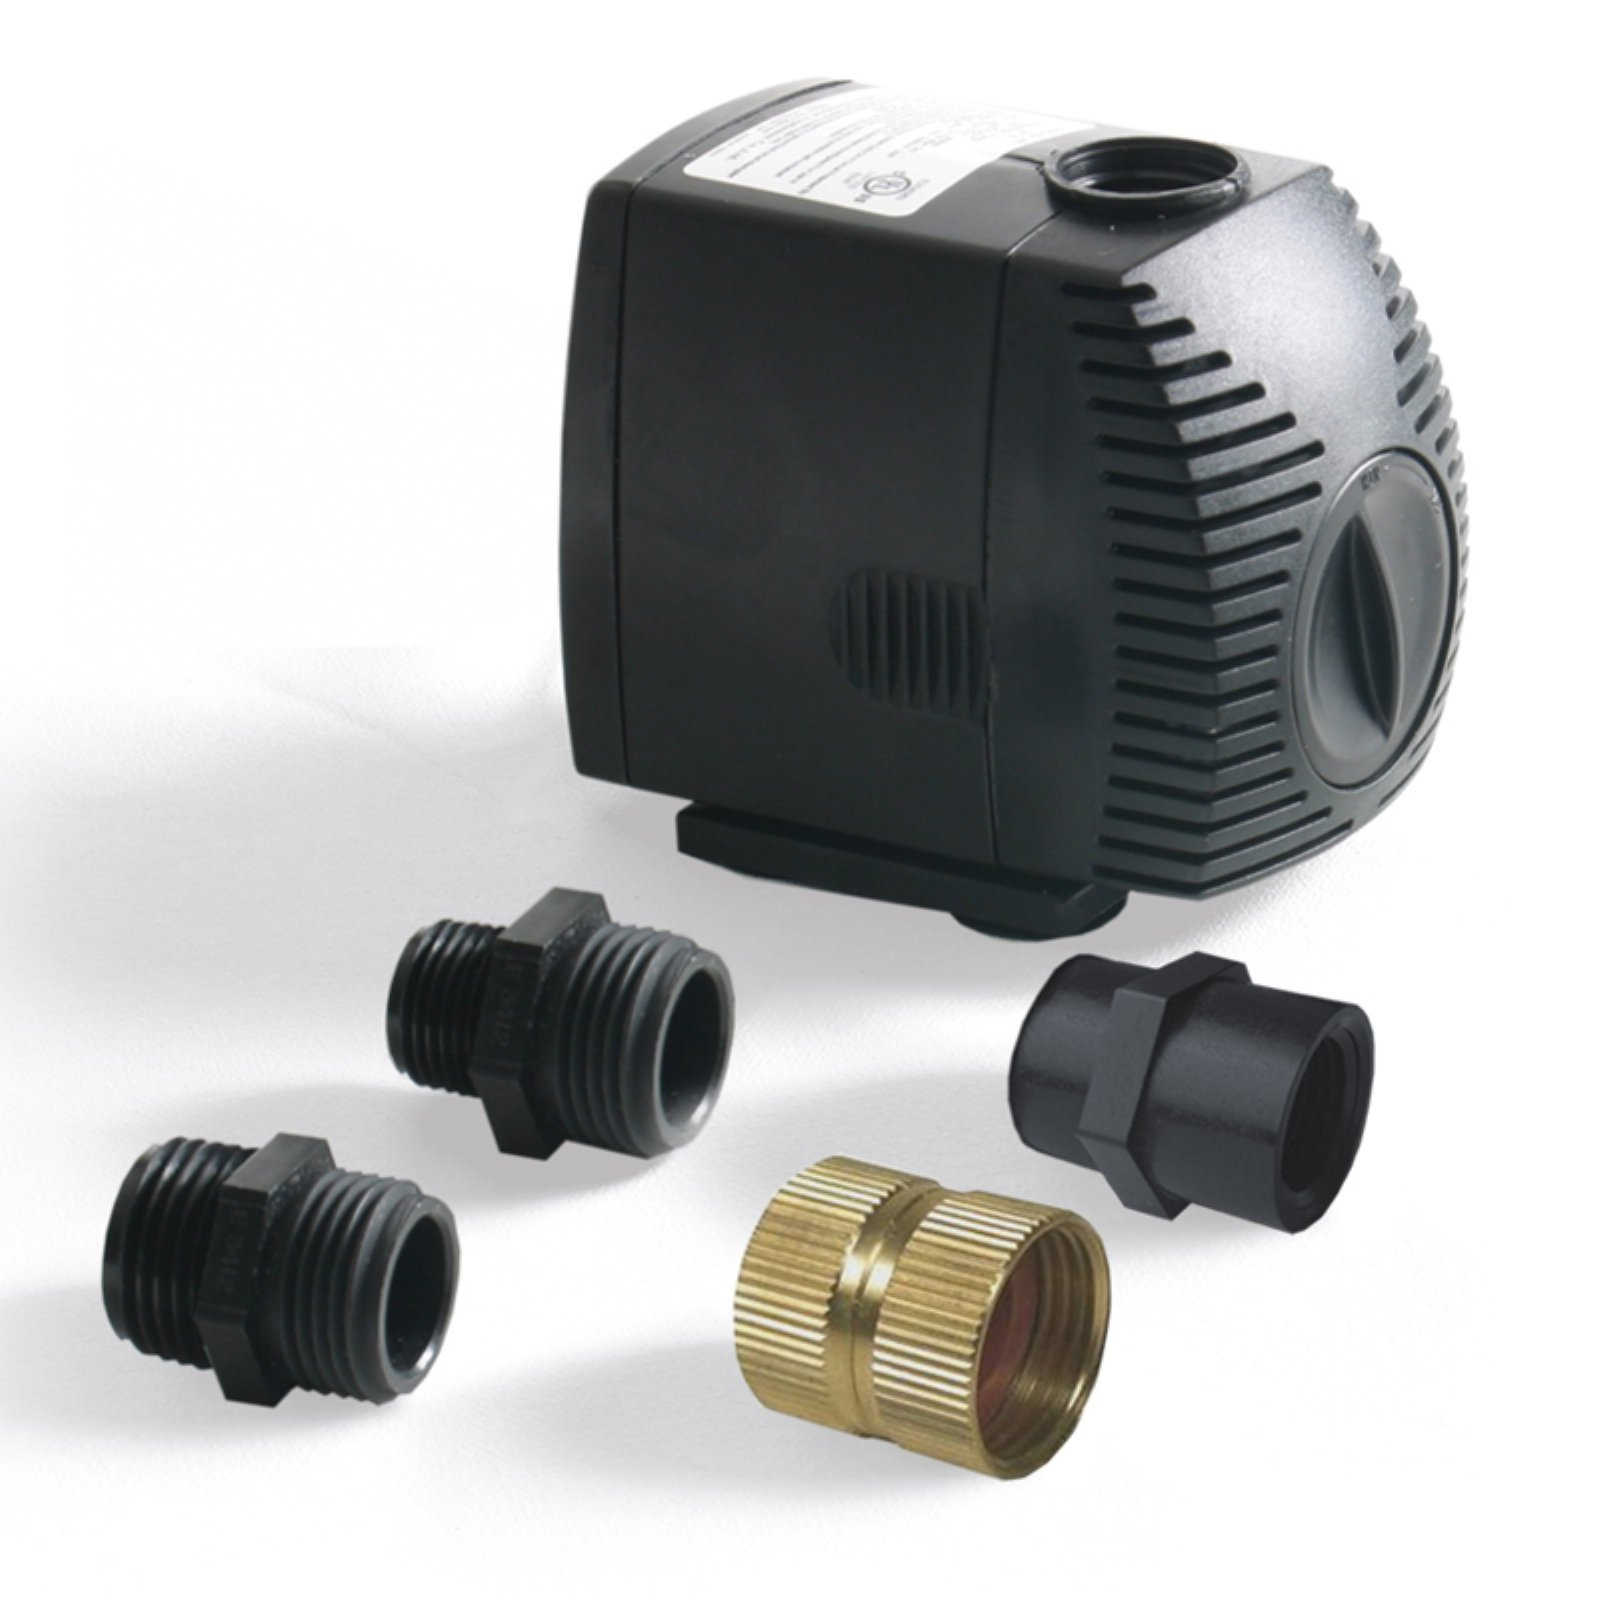 Algreen 81062 Rain Barrel Pump Kit